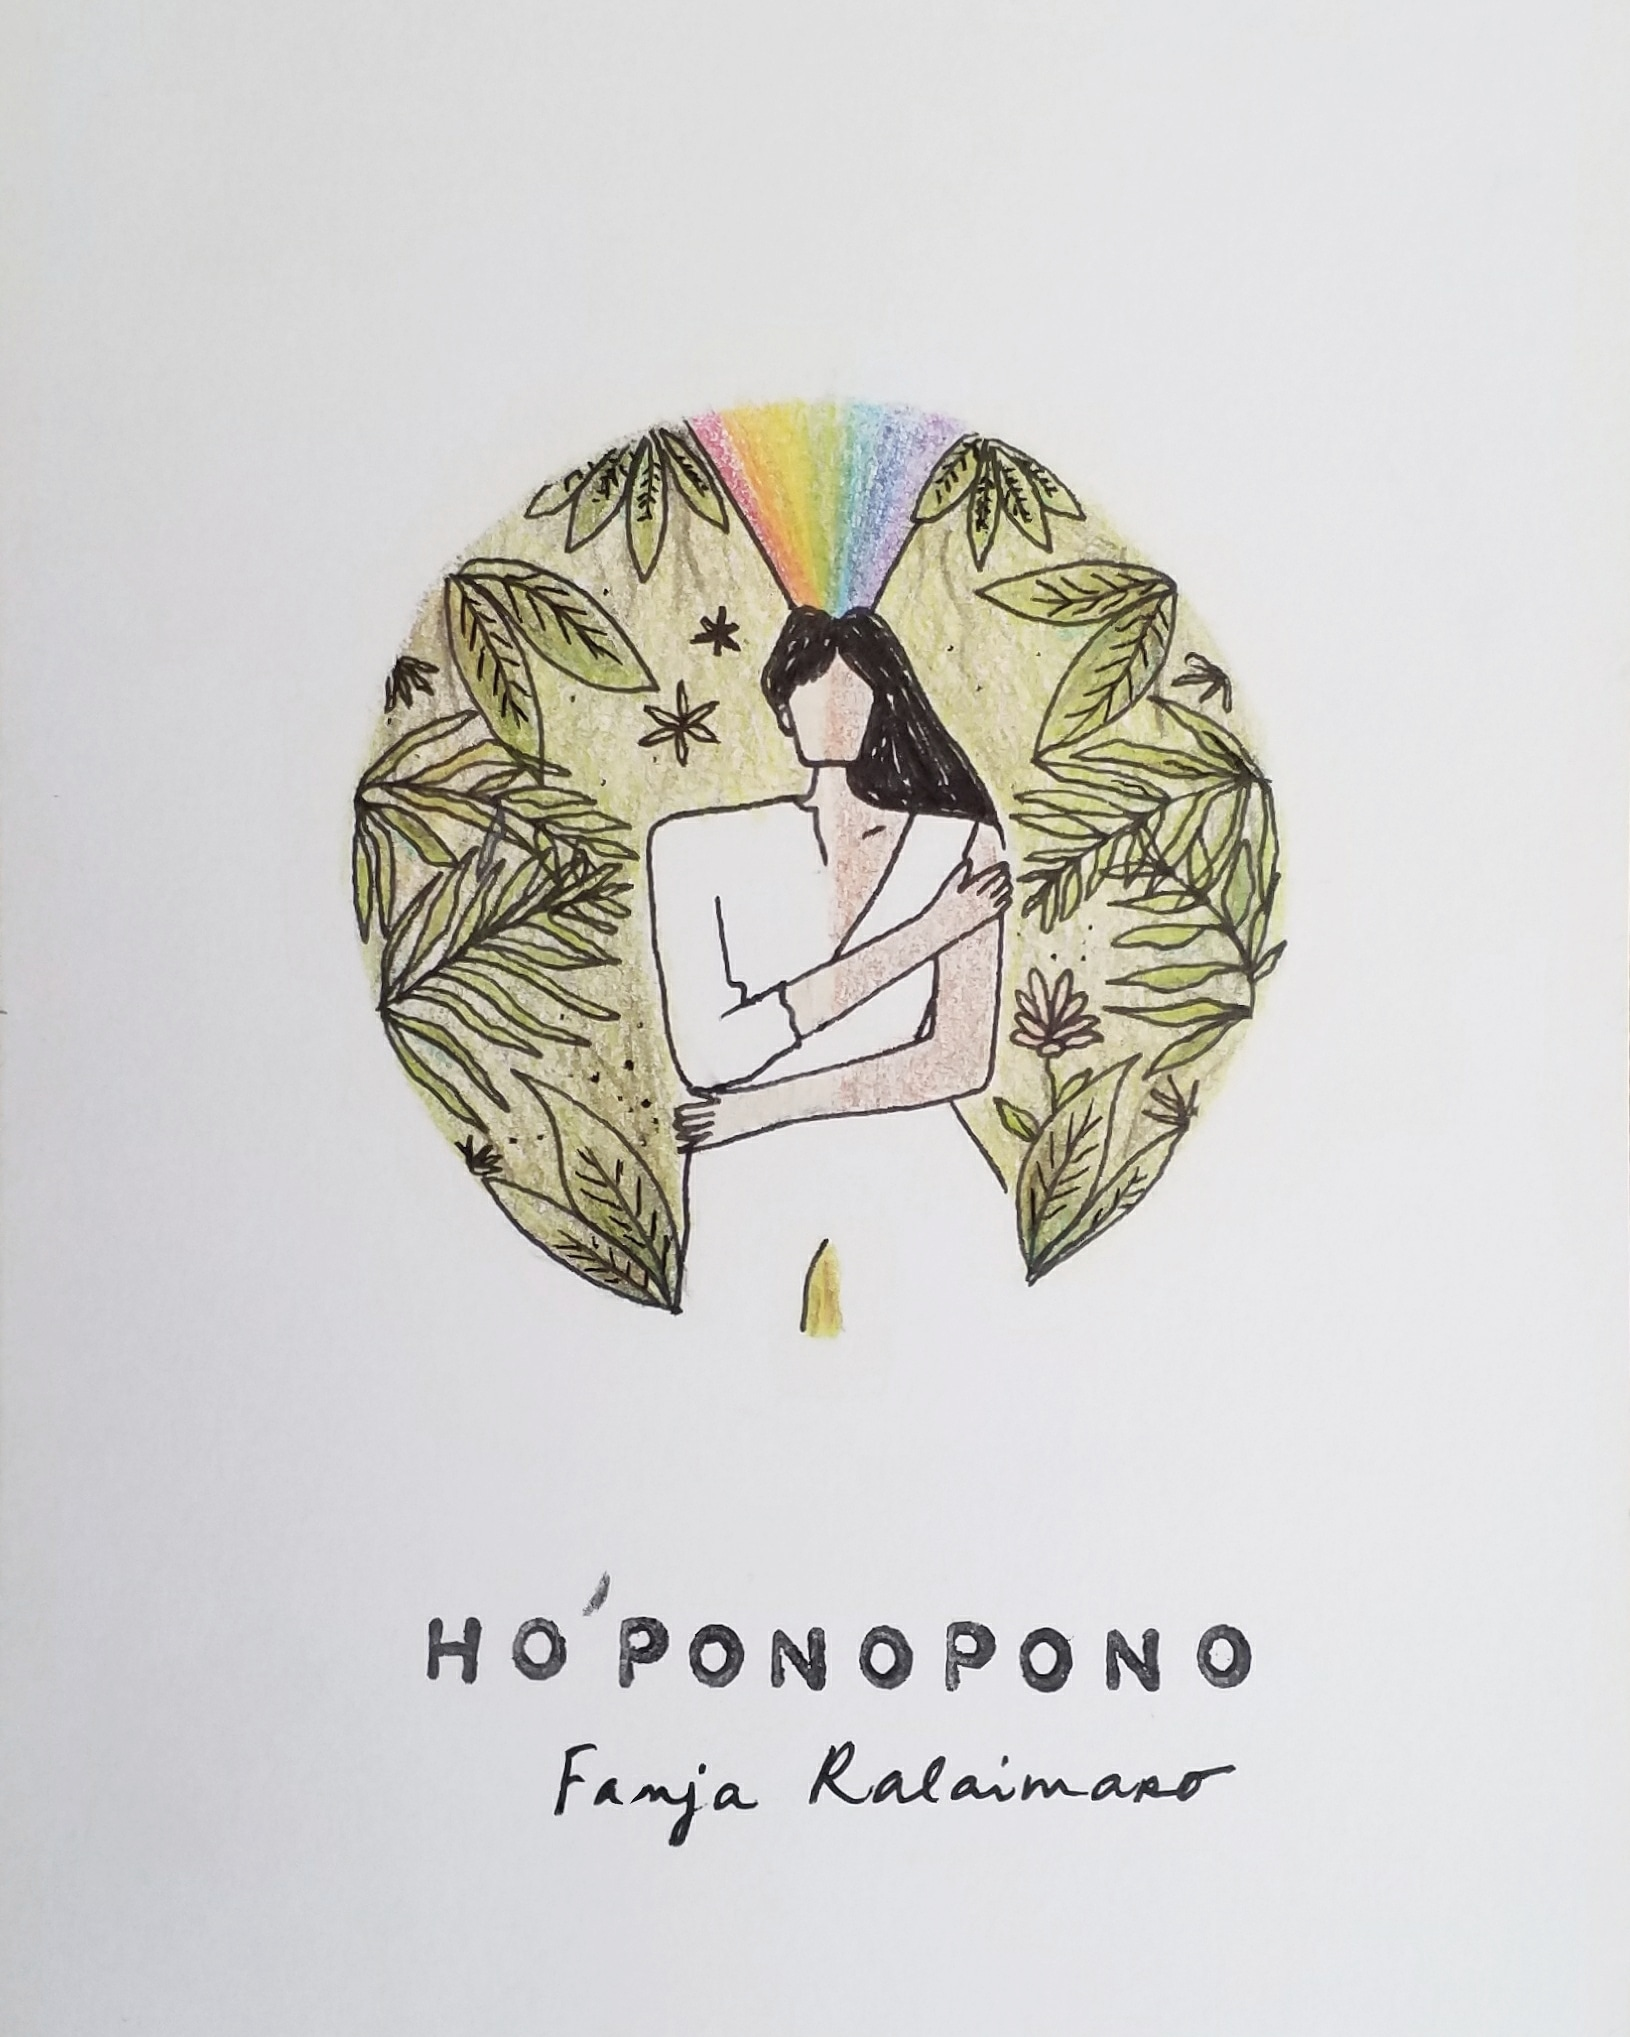 """""""I am Sorry. Forgive Me. Thank You. I Love You.    Powerful Words to Heal our World from Within."""" Ho'ponopono wisdom    (2018) Fanja Ralaimaro     ————     Home is Where Love is.    Love is What Truth is.    Home is where we Feel Safe.    Safe is when we Know we are not Judged for who We Truly Are.     I feel Home when I am in Nature because it is where I know I won't be judged.  I feel Home when I spend time with my Self in order to Grow.  I feel Home when I am with People who also want to Grow.    Who I Am is not my Origin, not my Skin Color, not the Shape of my Body, not my Nationality, not my Memories, not my Tastes, not the Languages I Speak, not my Job, not my Clothes. These are just projections of me in the material World, not who I Truly am. In other words, they are just Tools I use to Spread Messages coming from the World Within and Outside.     Judgment there is when we are disconnected from the Source; Love.     So, How can we Feel Home (Anytime or Anywhere) when we constantly feel that we are being judged by people or ourselves constantly Judging others?  This happens when we are lacking of Self Love. When we truly Love Ourselves, we don't force Ourselves Anymore to Stay in a place we don't feel Home anymore. When we judge others, we need to Understand the True Origin of our Sadness or our Anger, we need to Face it Honestly and then Release it.     I am that I am.     And like Birds I fly from one Place to another in Search for my Home.  On Mother Earth as in the Universe I know there is a Home for Everyone.  The Only Frontier existing is in our limited minds. It is the invisible frontier that We, Humans build artificially in order to Deny our True Self, to slowly Destroy Ourselves and other Living Creatures.     When We, Humans Understand That Home Already Resides Within Ourselves, We will Understand That No Matter Who We Are And Wherever We Can Possibly Be On Planet Earth And In The Universe, We Are Home.     Love, Light and Peace.    Fanja"""